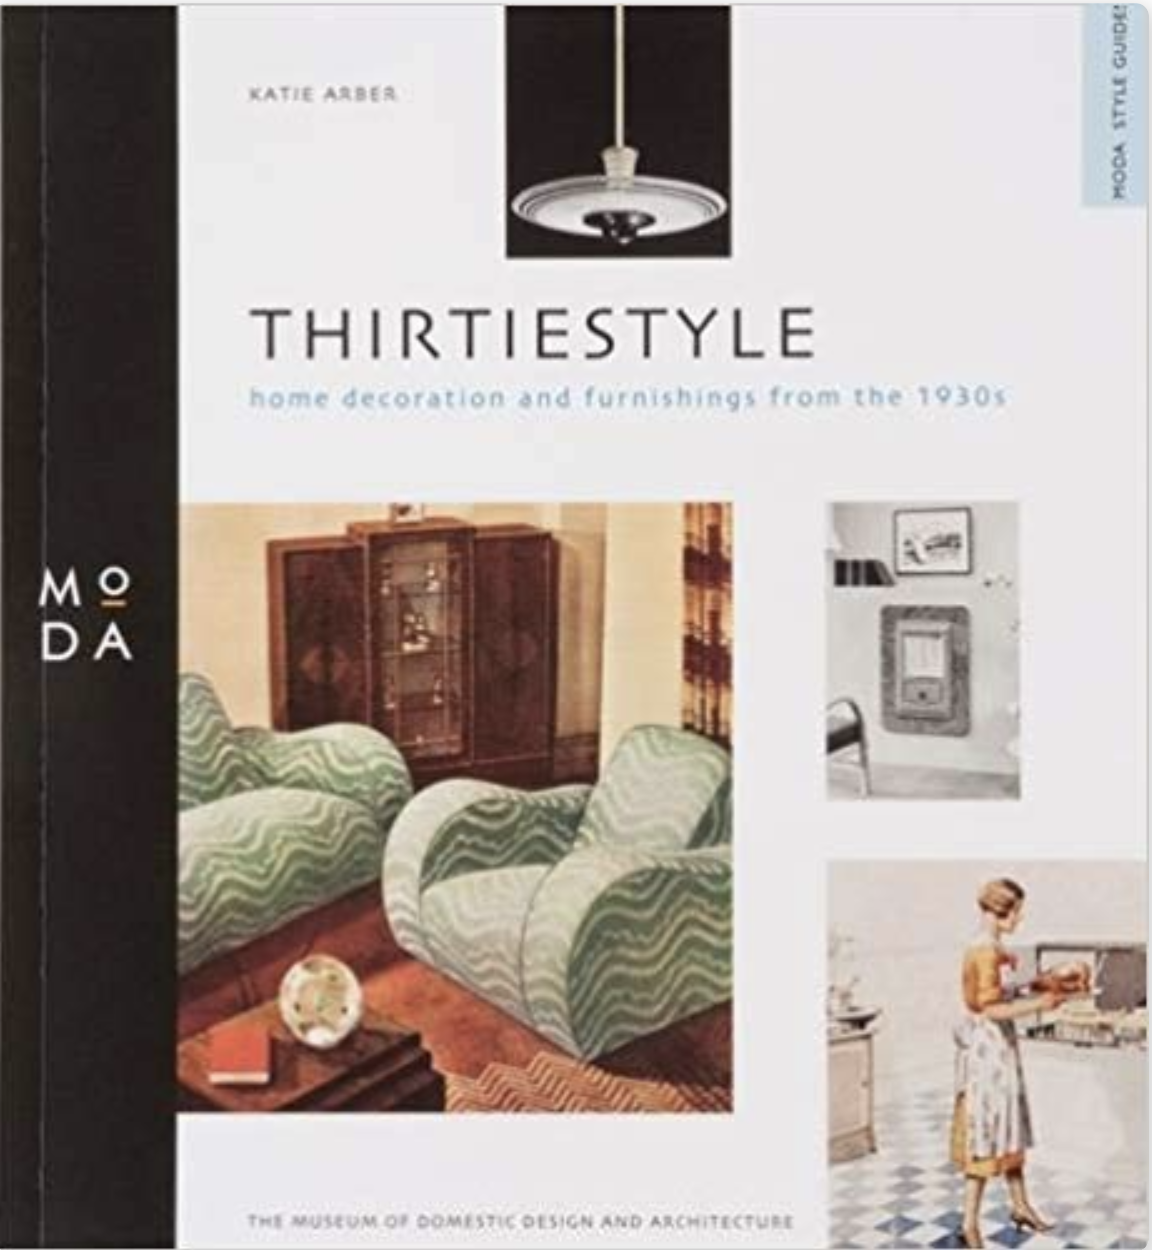 One in a series of books about style through the decades, from the Museum Of Domestic Design and Architecture, within Middlesex University (London).